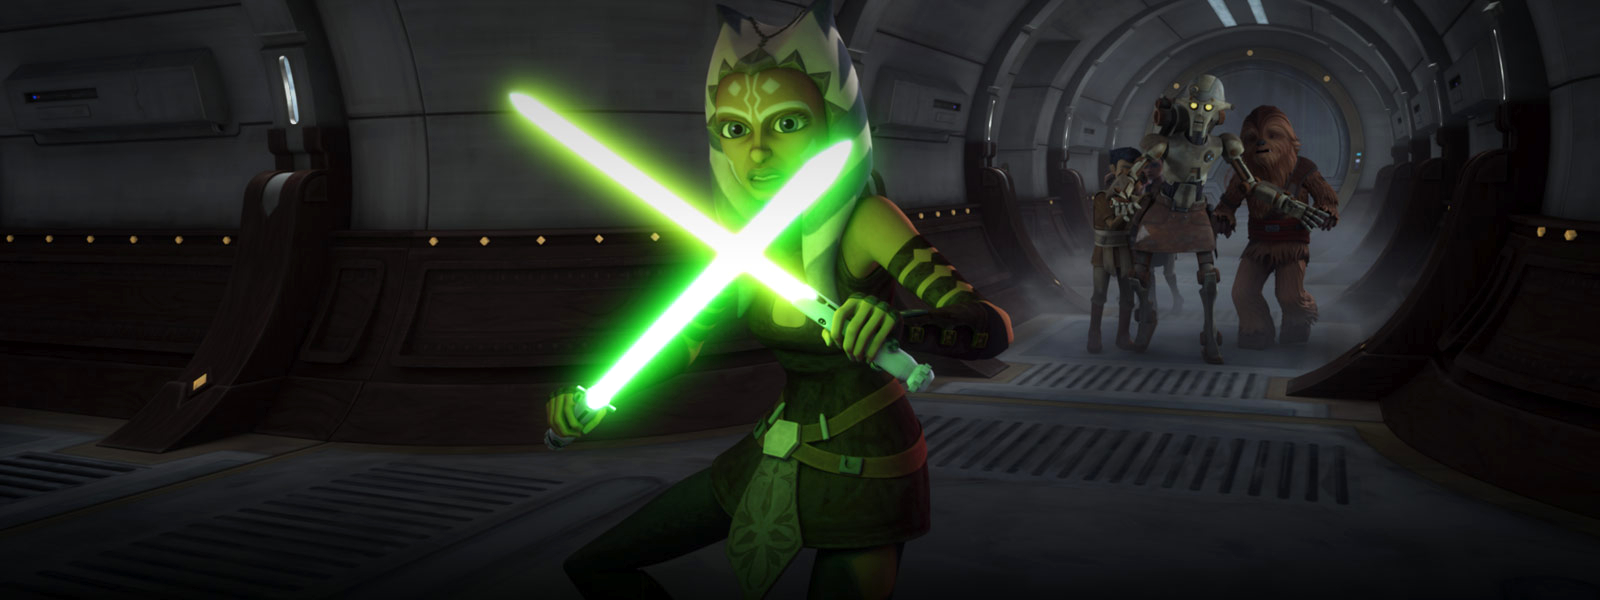 Star Wars: The Clone Wars - April 4th